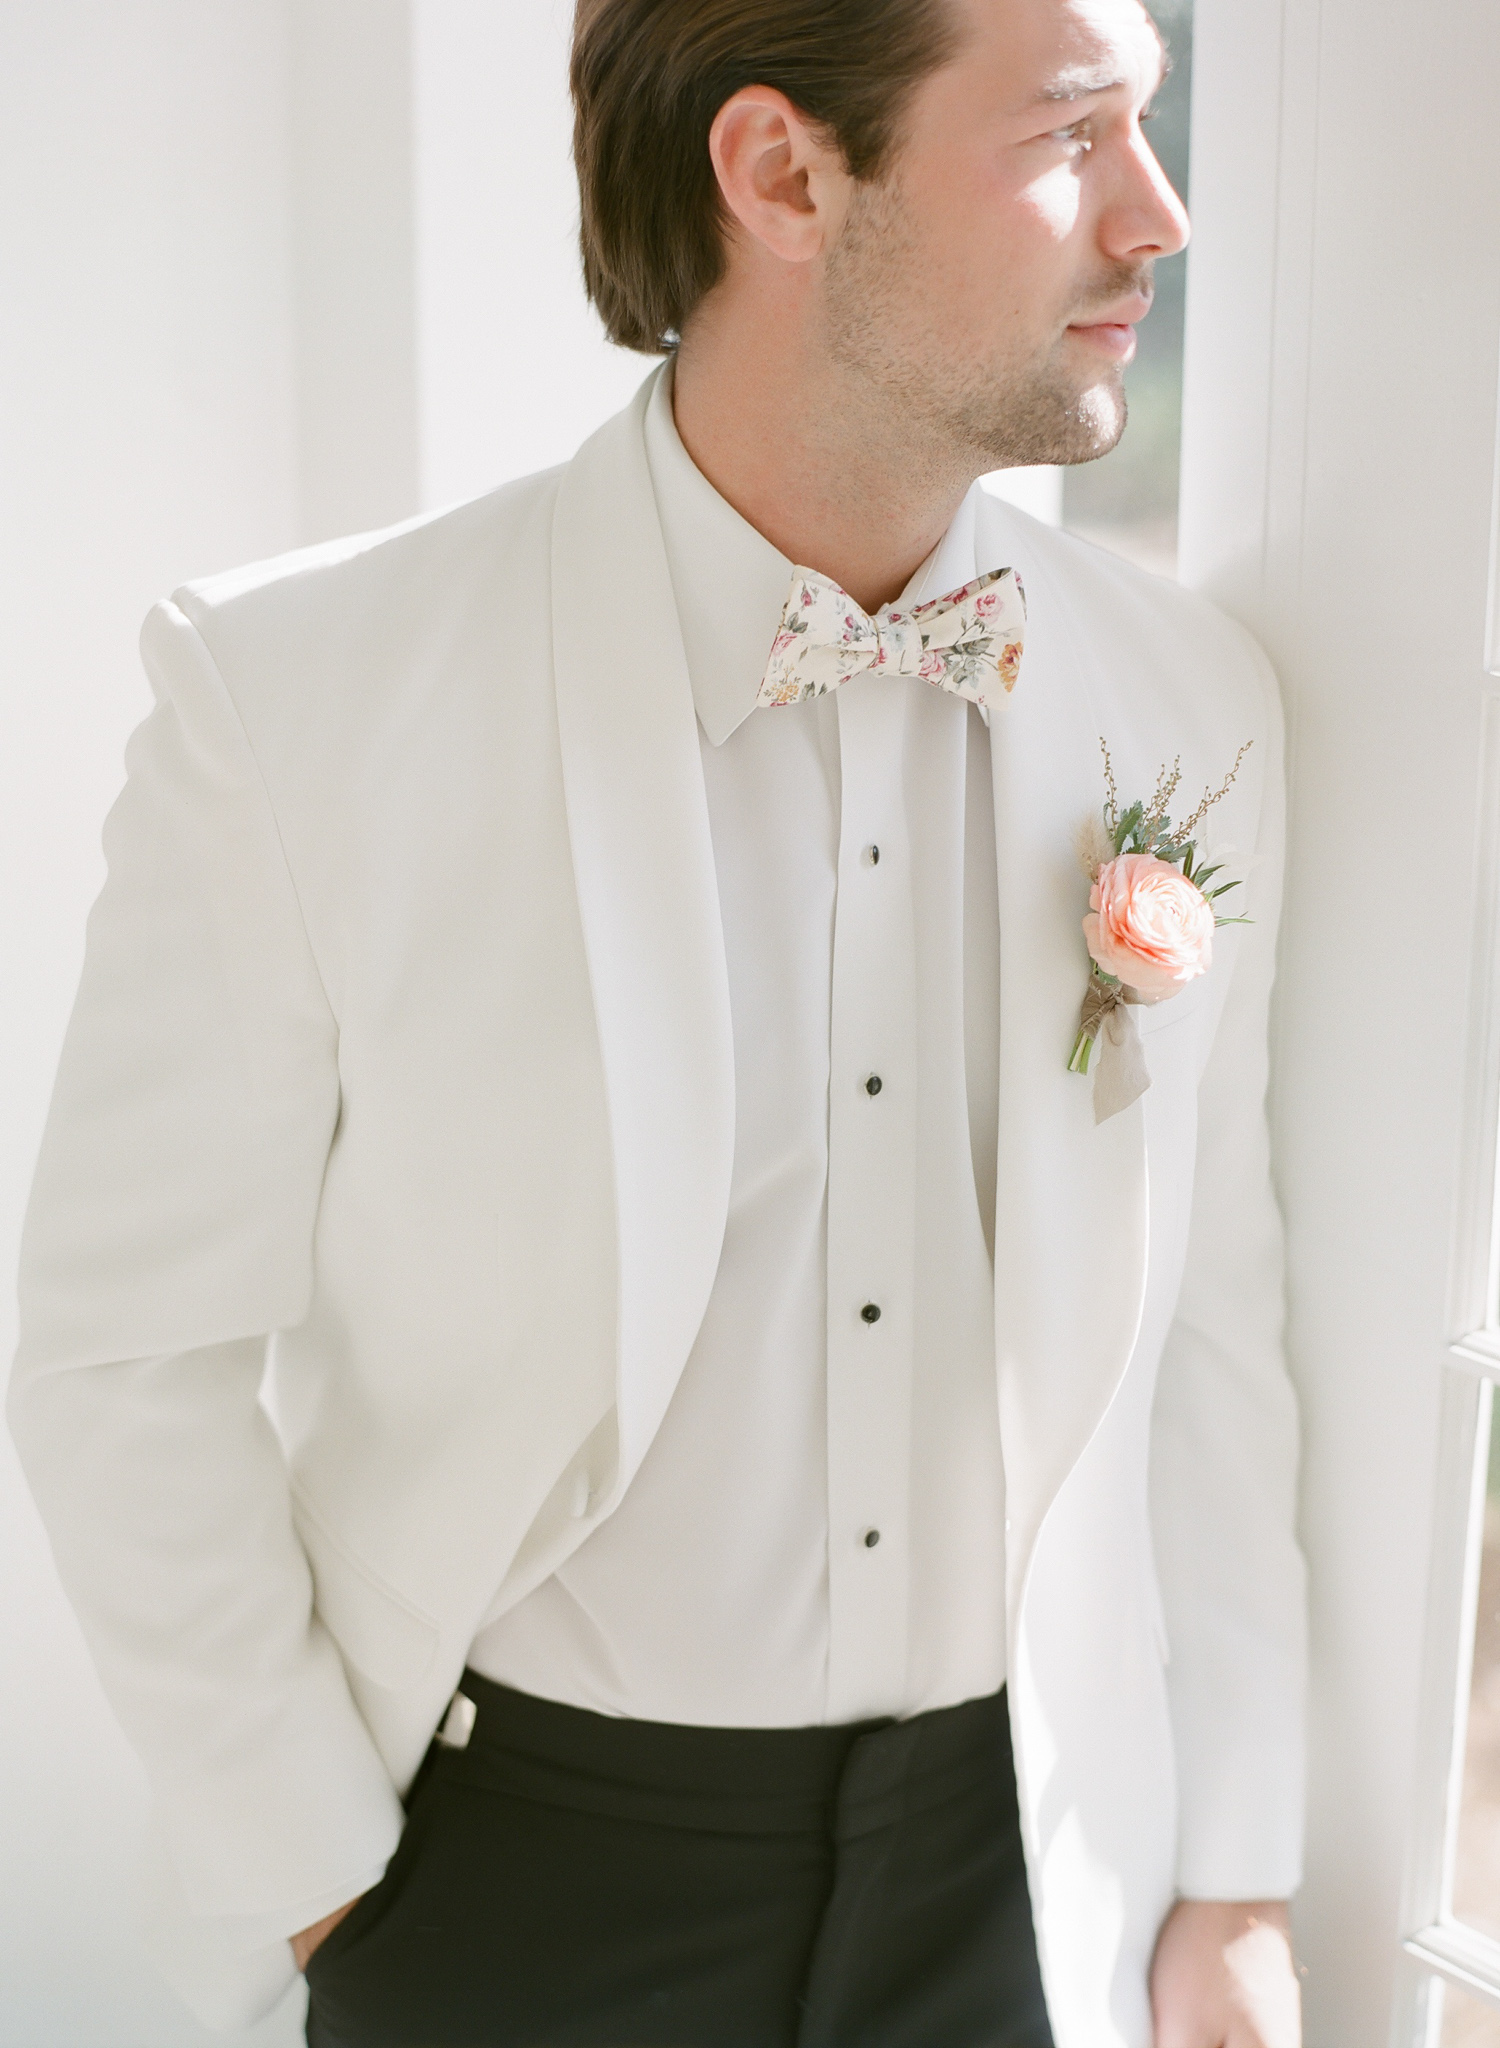 Groom-In-White.jpg